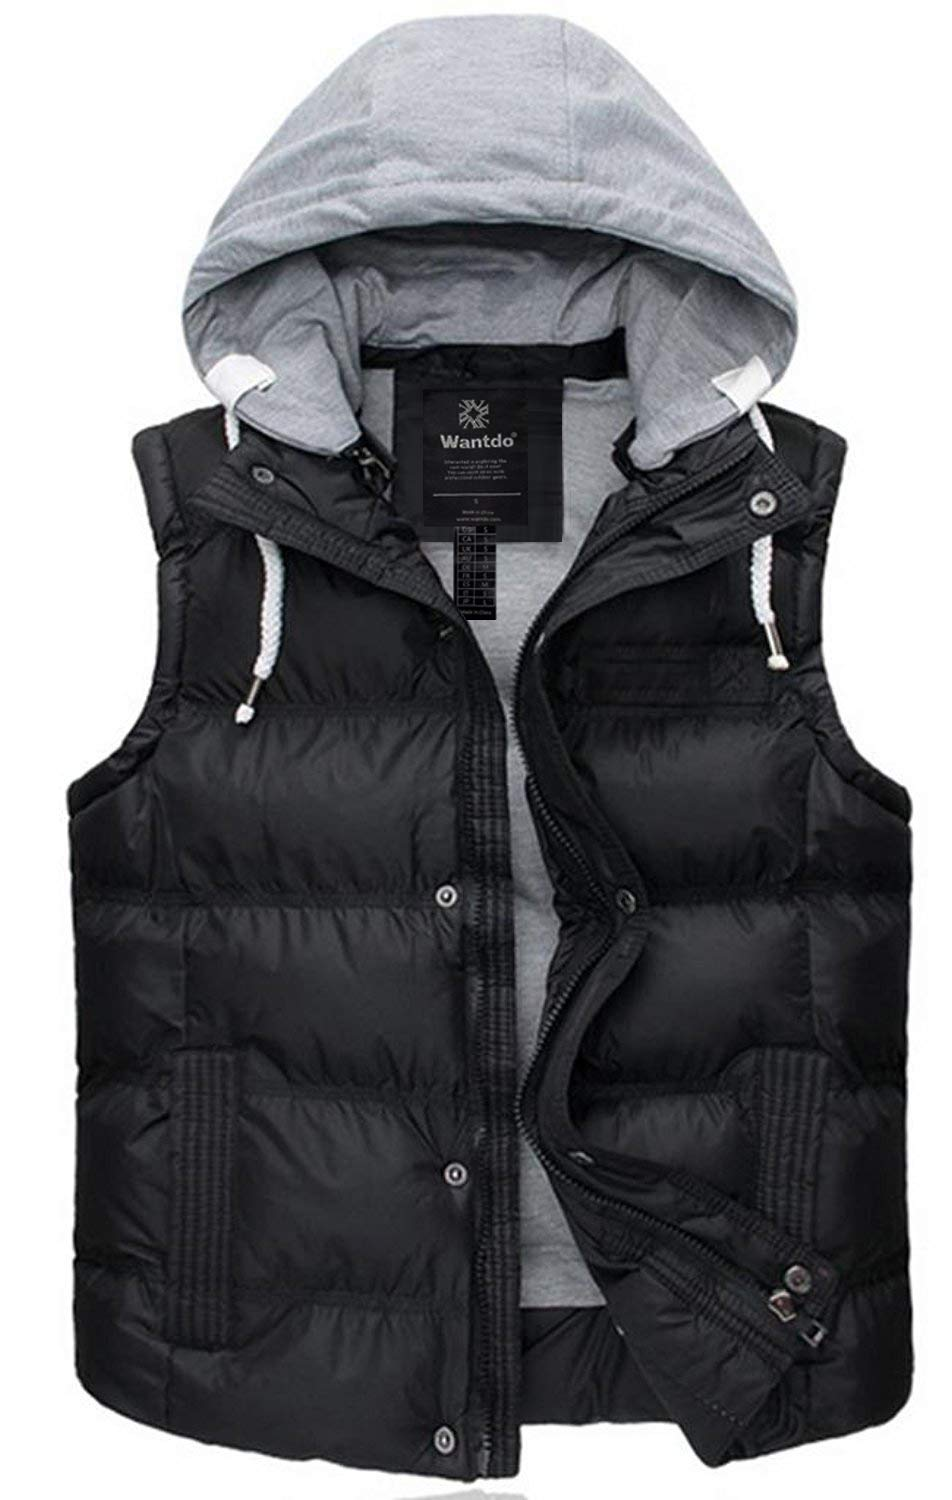 Wantdo Women's Quilted Puffer Vest Outwear with Removable Hood X-Large Black by Wantdo